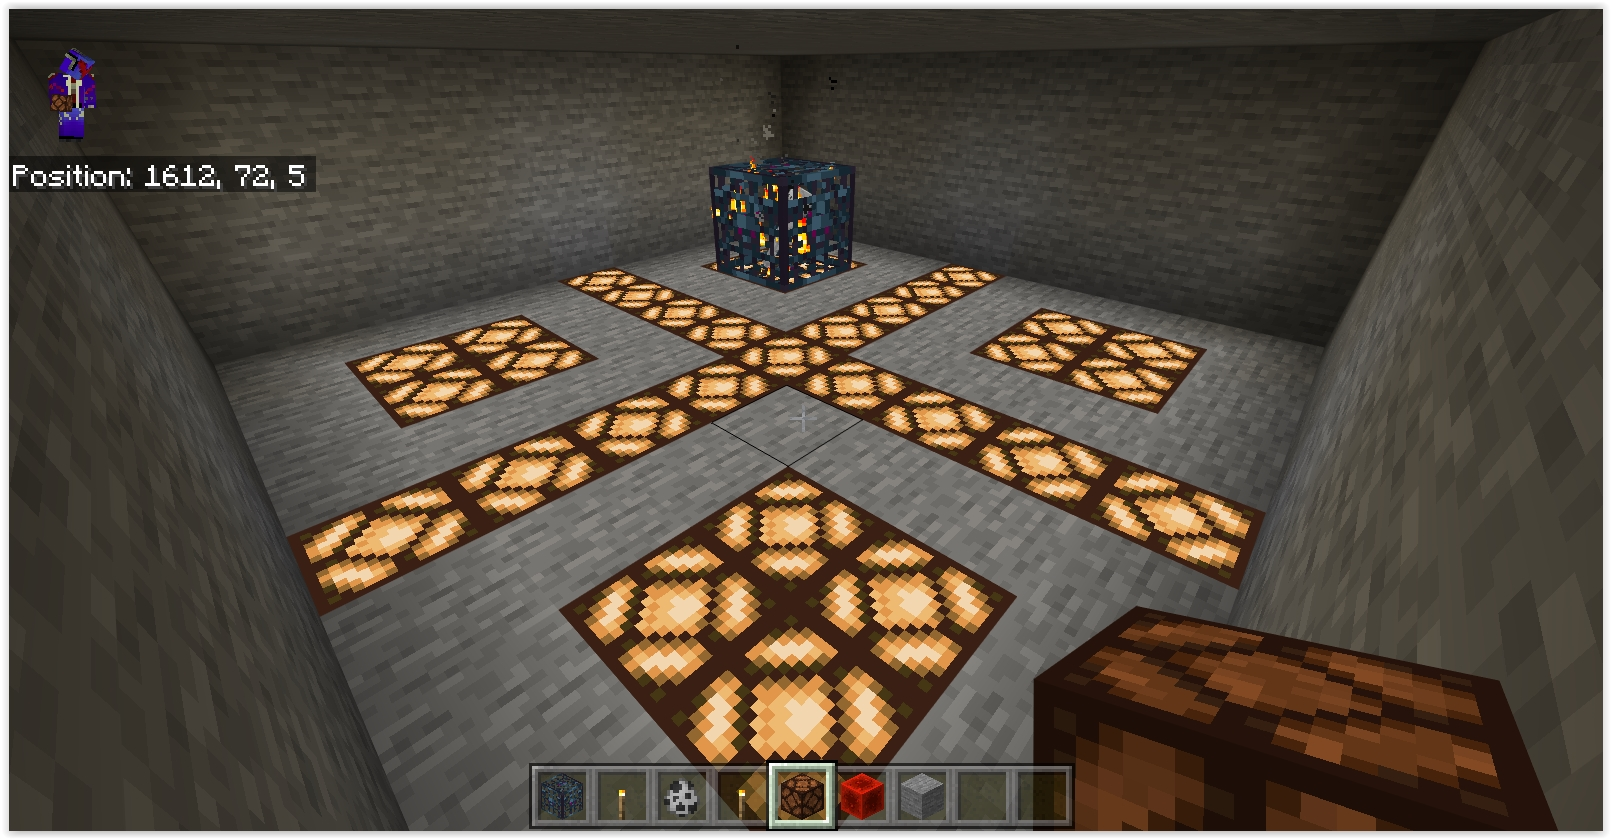 MCPE-42427] Mob spawners are broken  Mobs keep spawning with torches